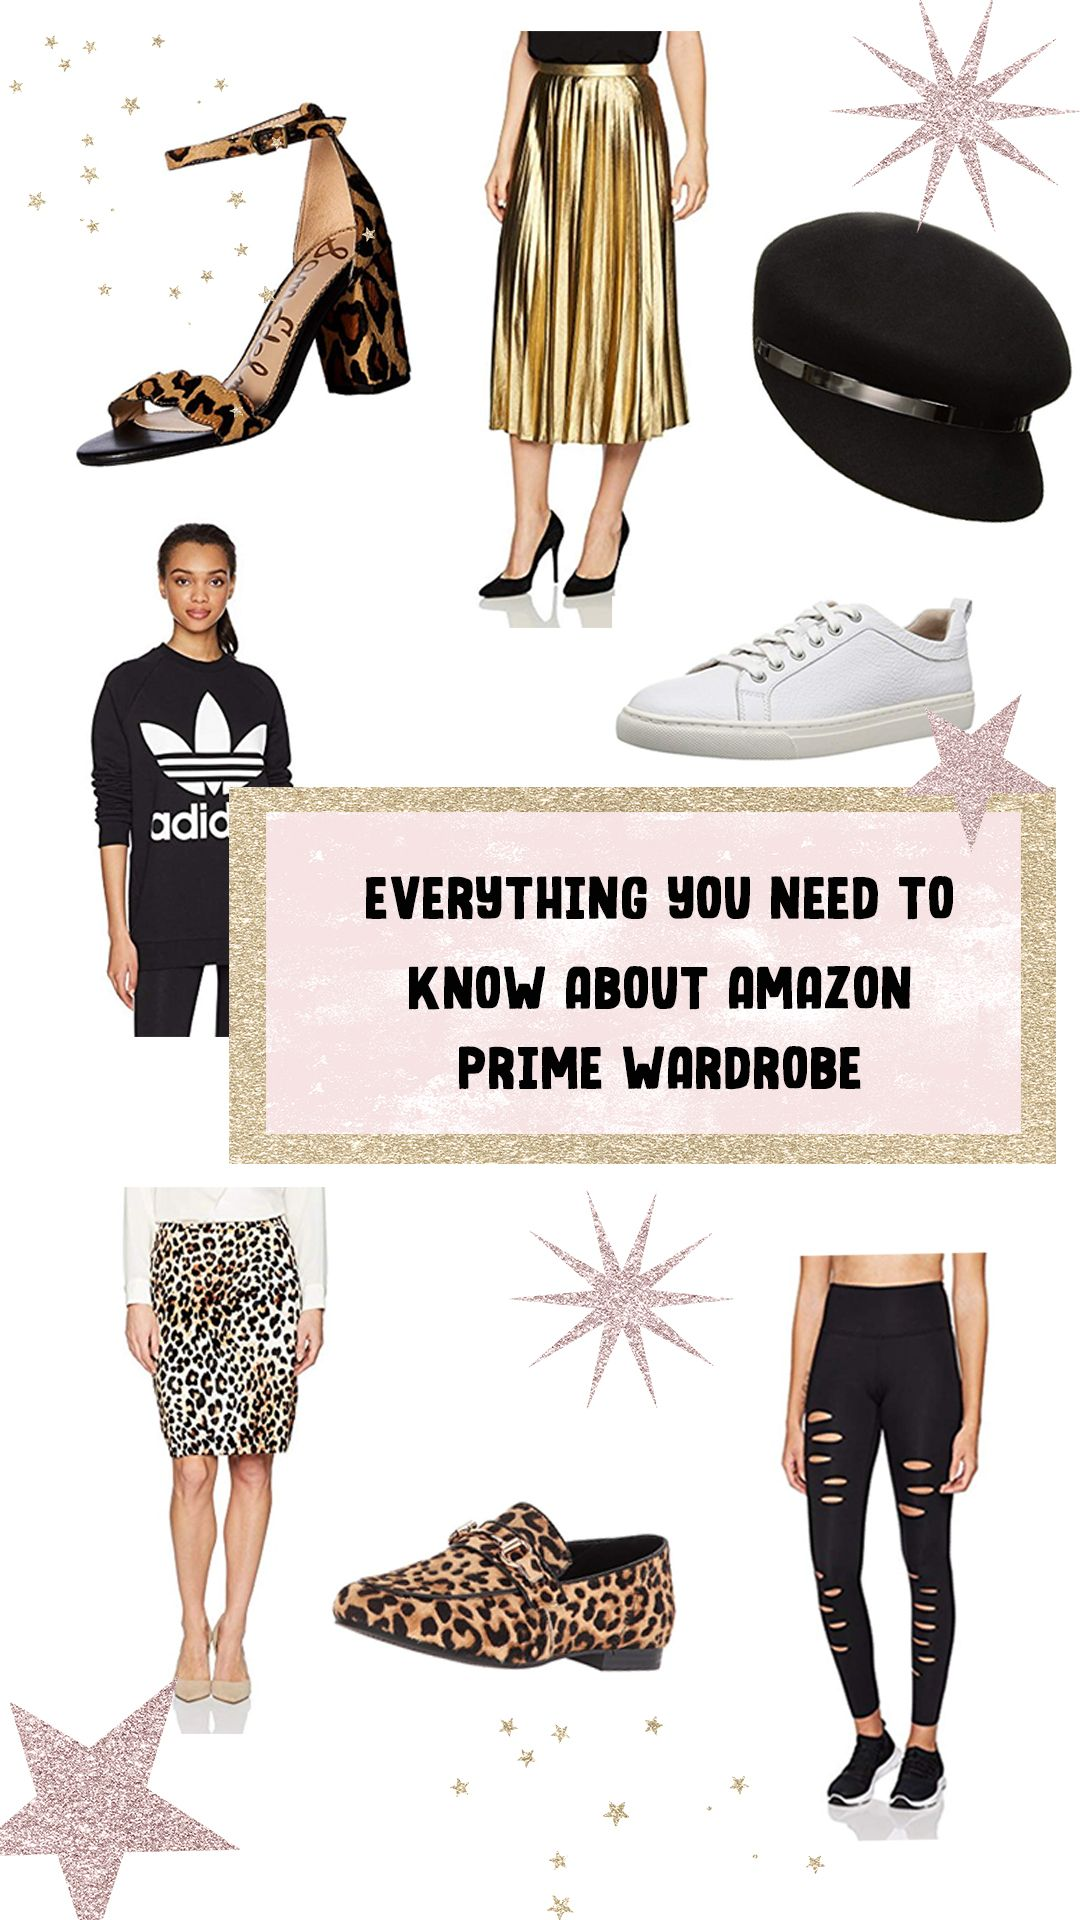 d259289df11e Do you love Amazon Prime!  Did you know Amazon Prime Wardrobe lets you try